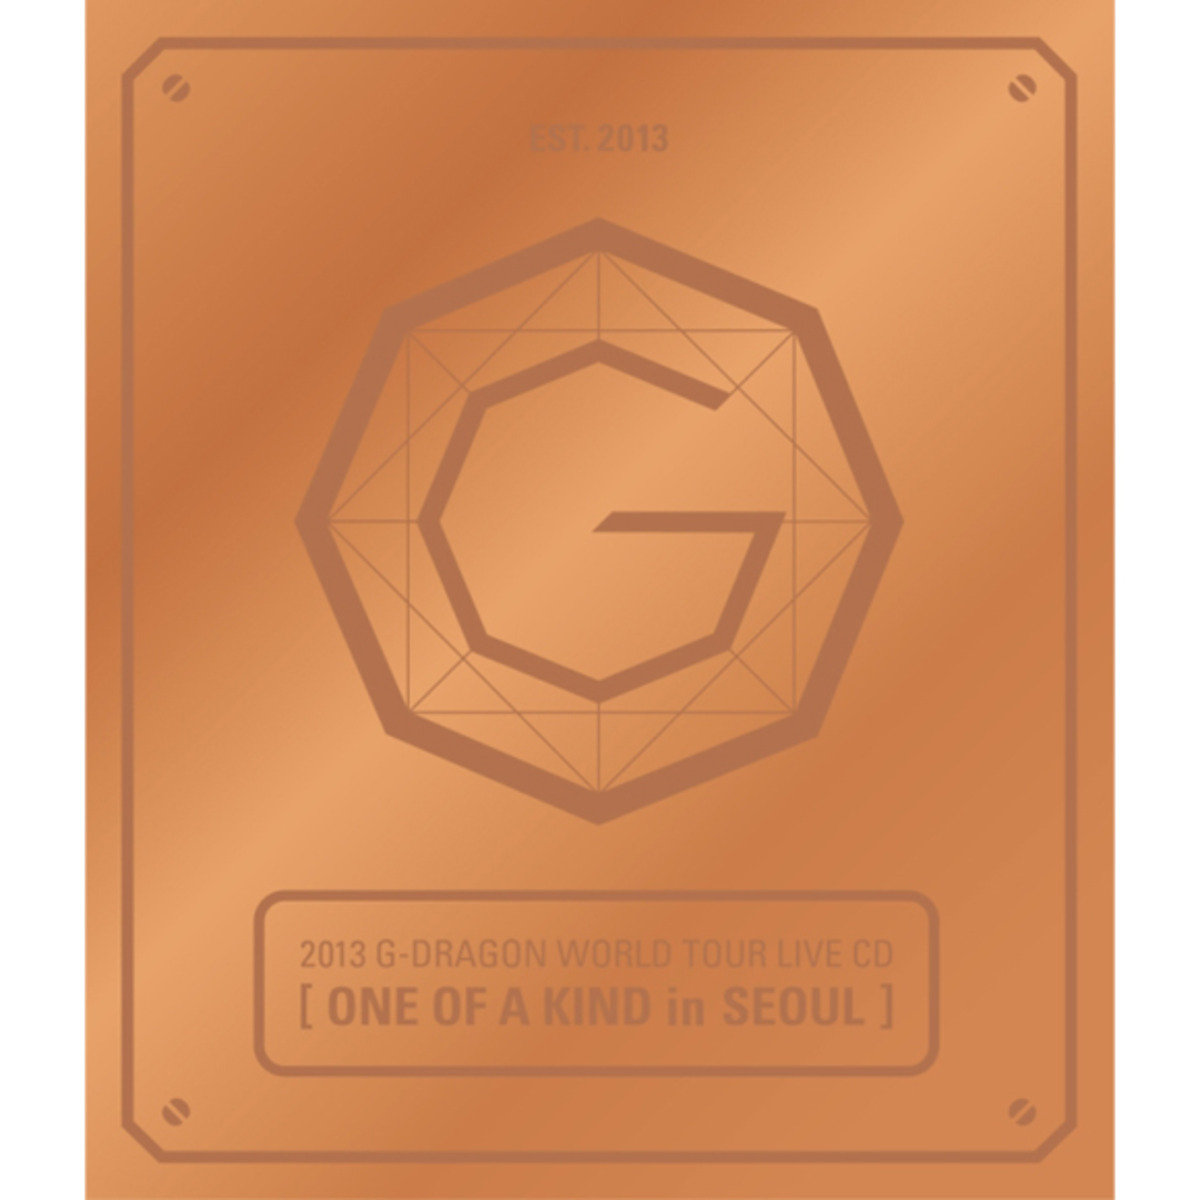 G-Dragon -2013 G-DRAGON WORLD TOUR LIVE CD[ONE OF A KIND in SEOUL](Bronze Ver+Booklet+Standing Paper